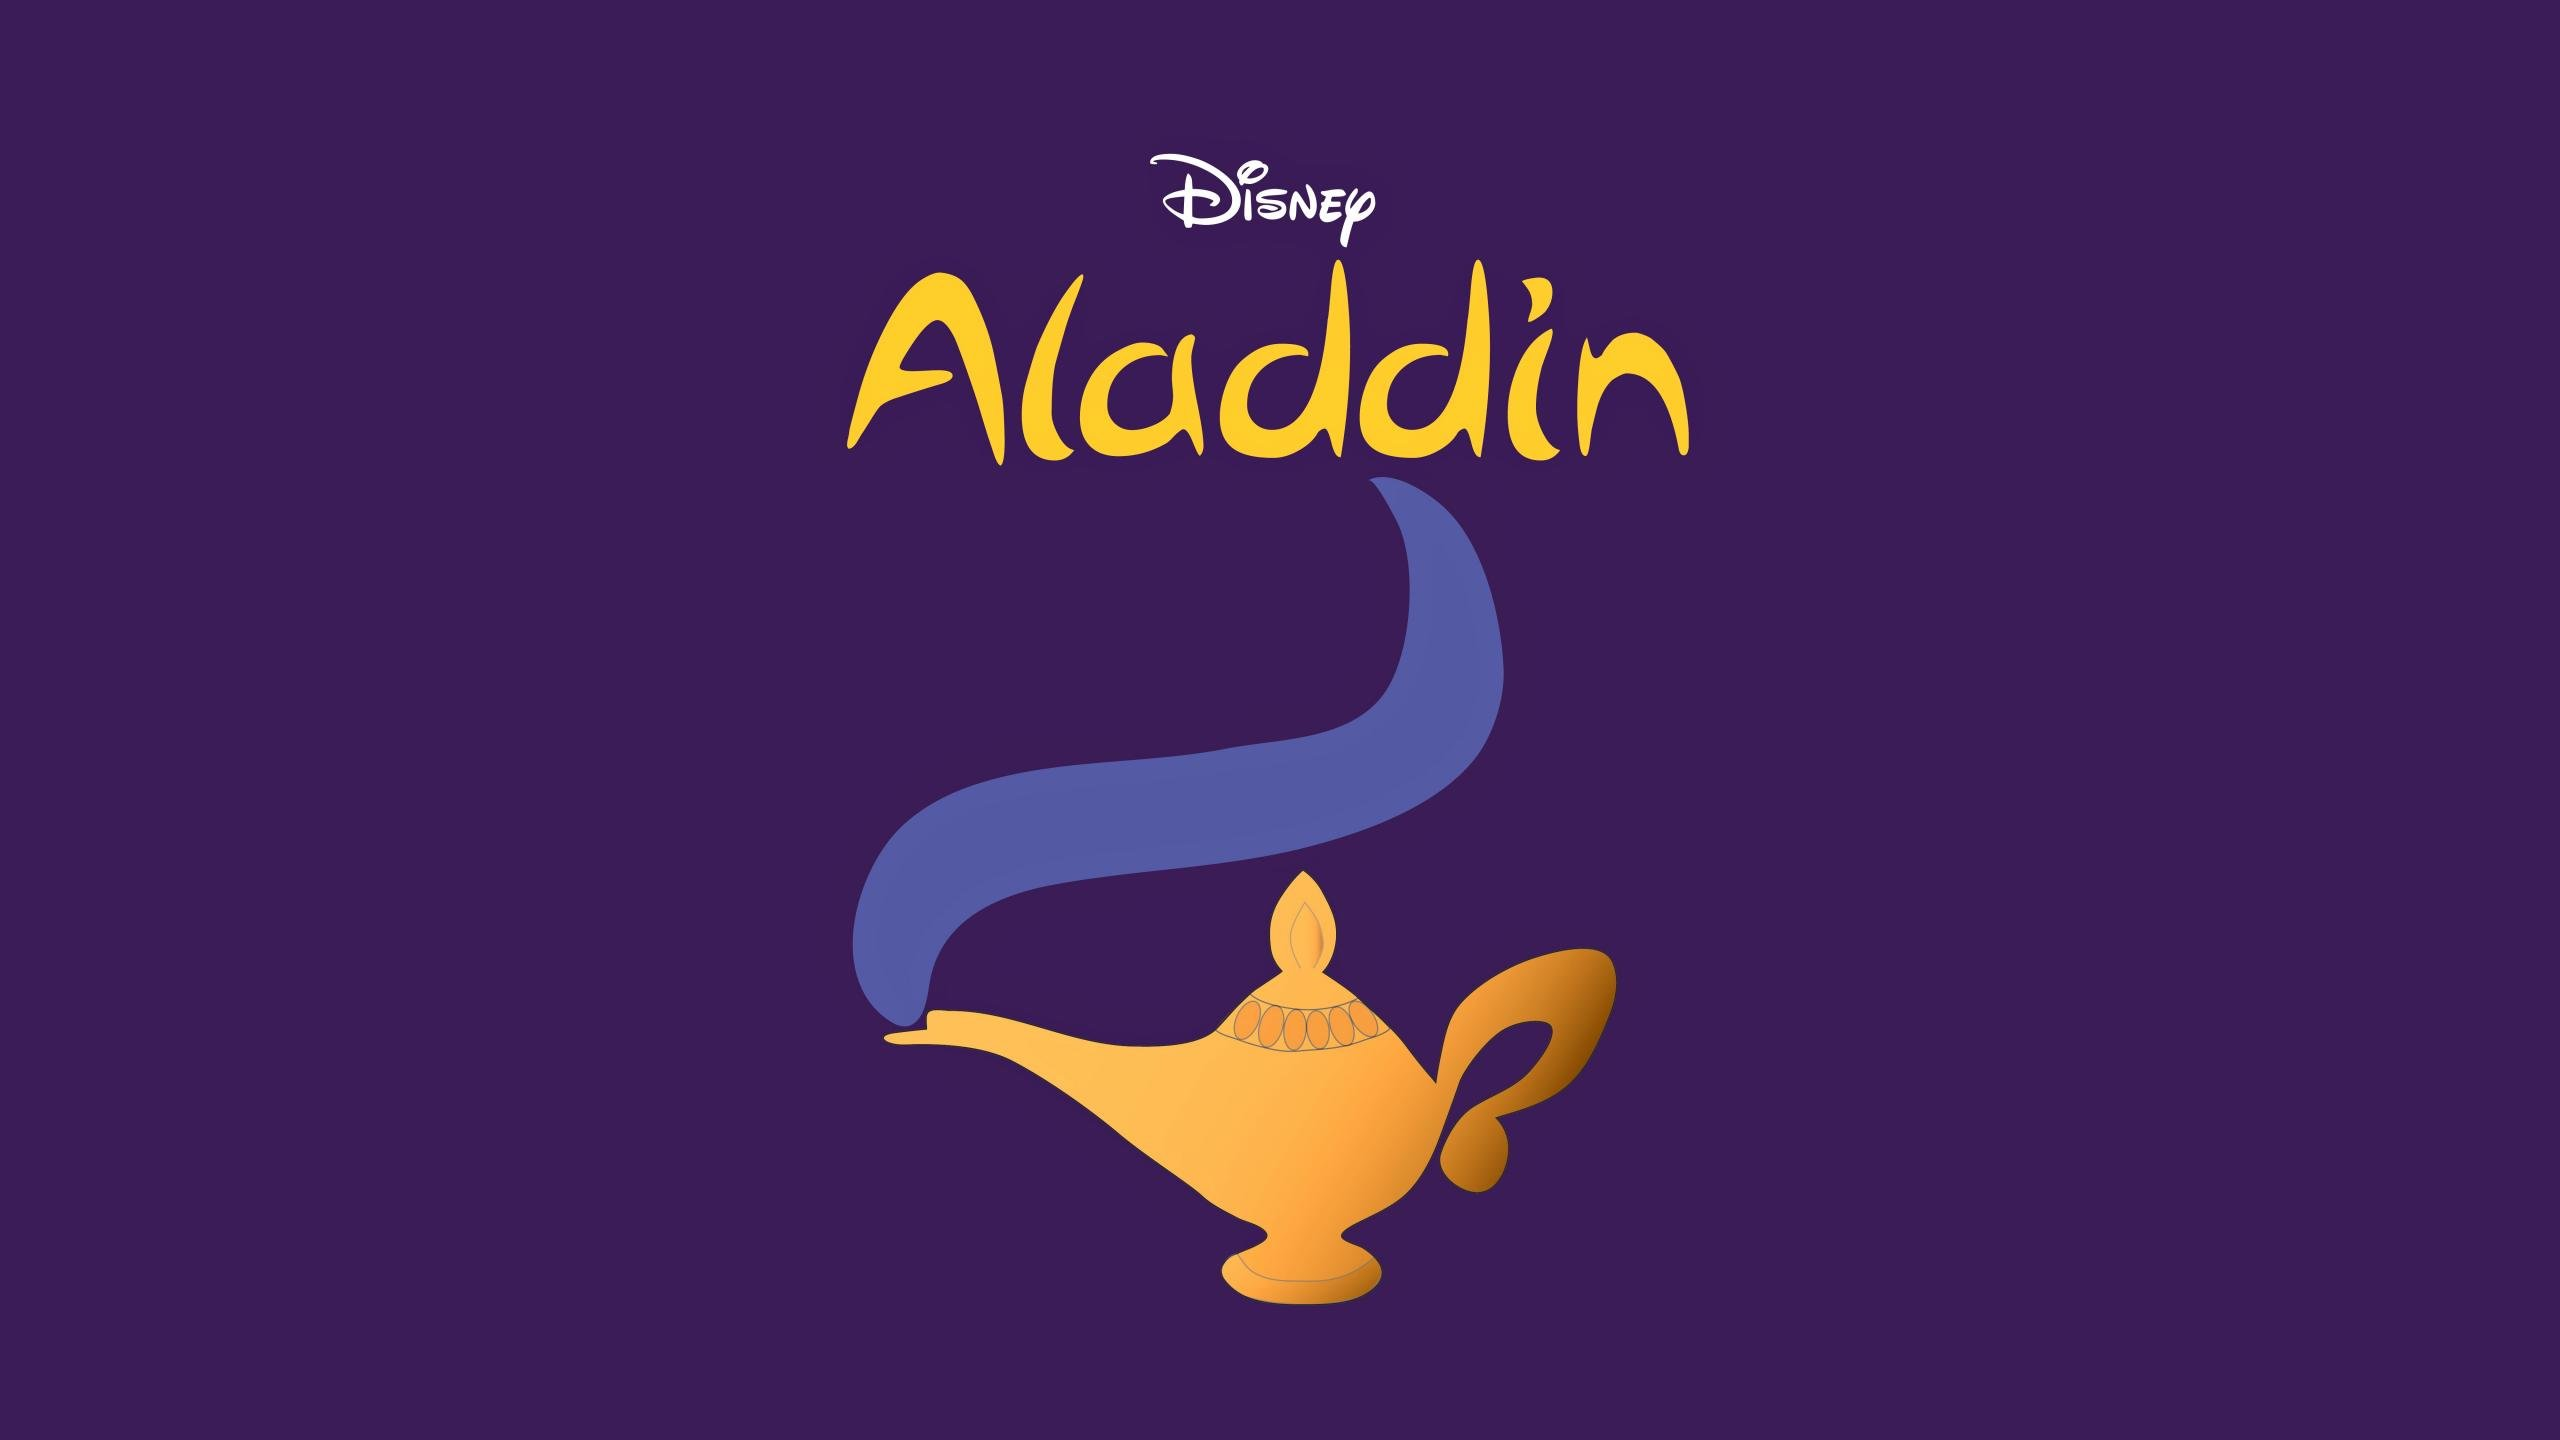 Awesome Aladdin free wallpaper ID:277717 for hd 2560x1440 desktop